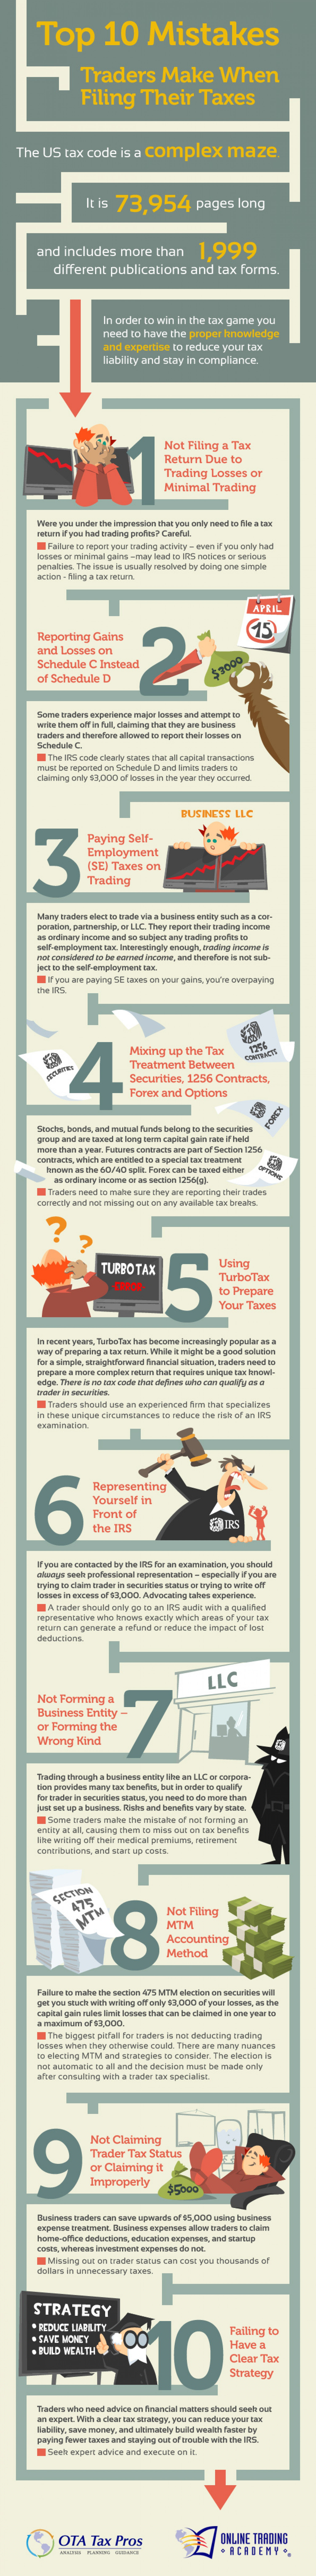 trading academys top 10 tax mistakes traders make 533563573ba93 w1500 Best Infographics For Your Inspiration